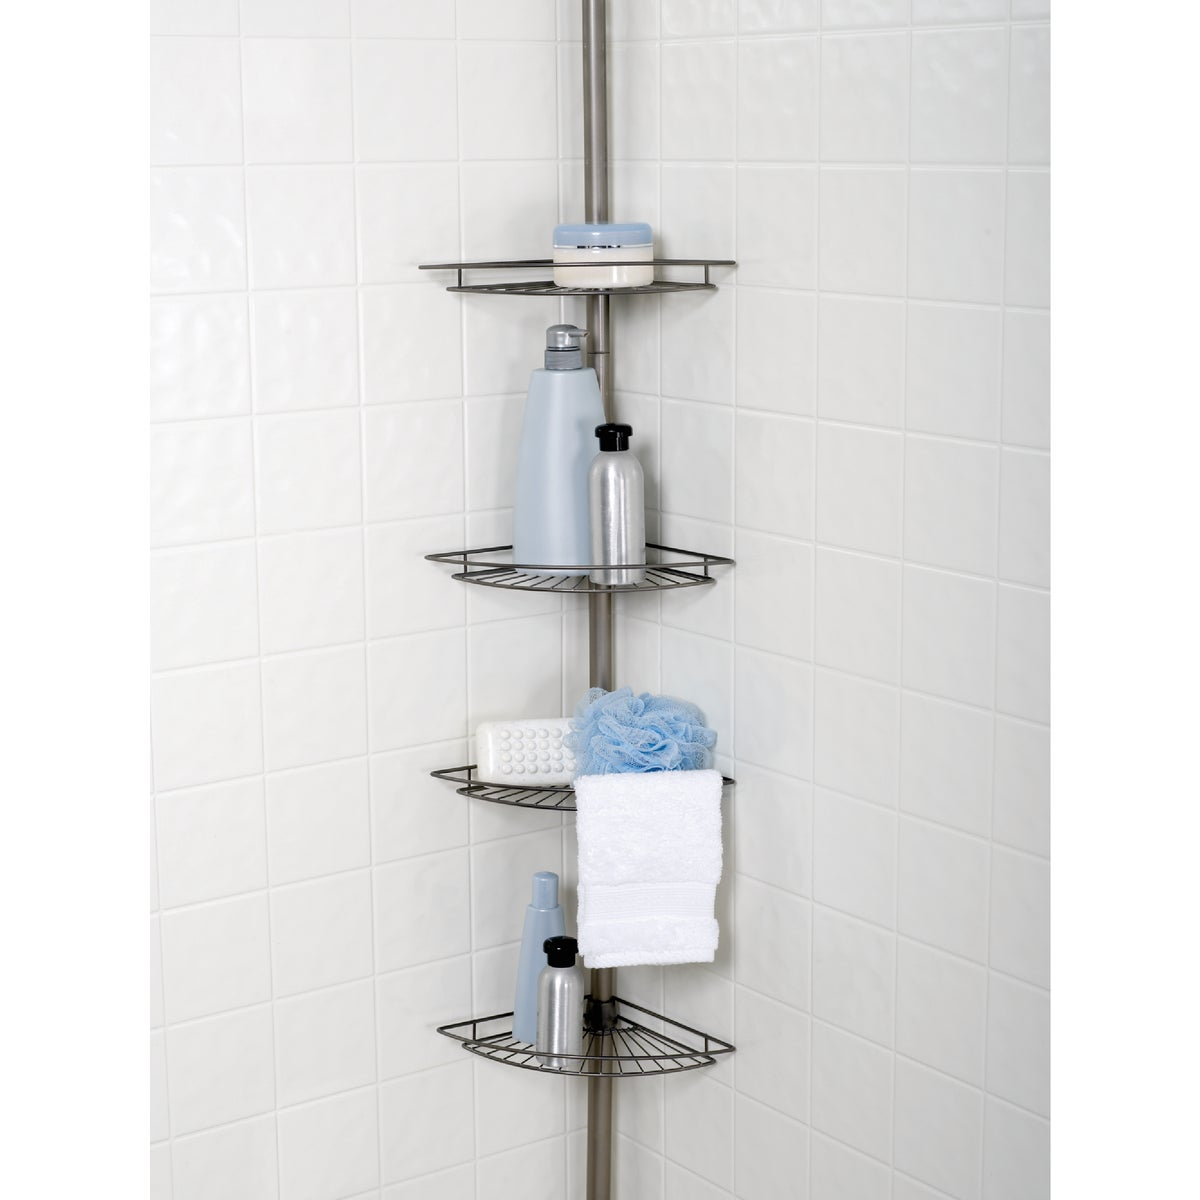 4-SHELF BN POLE CADDY - 2114NN by Zenith Prod Corp